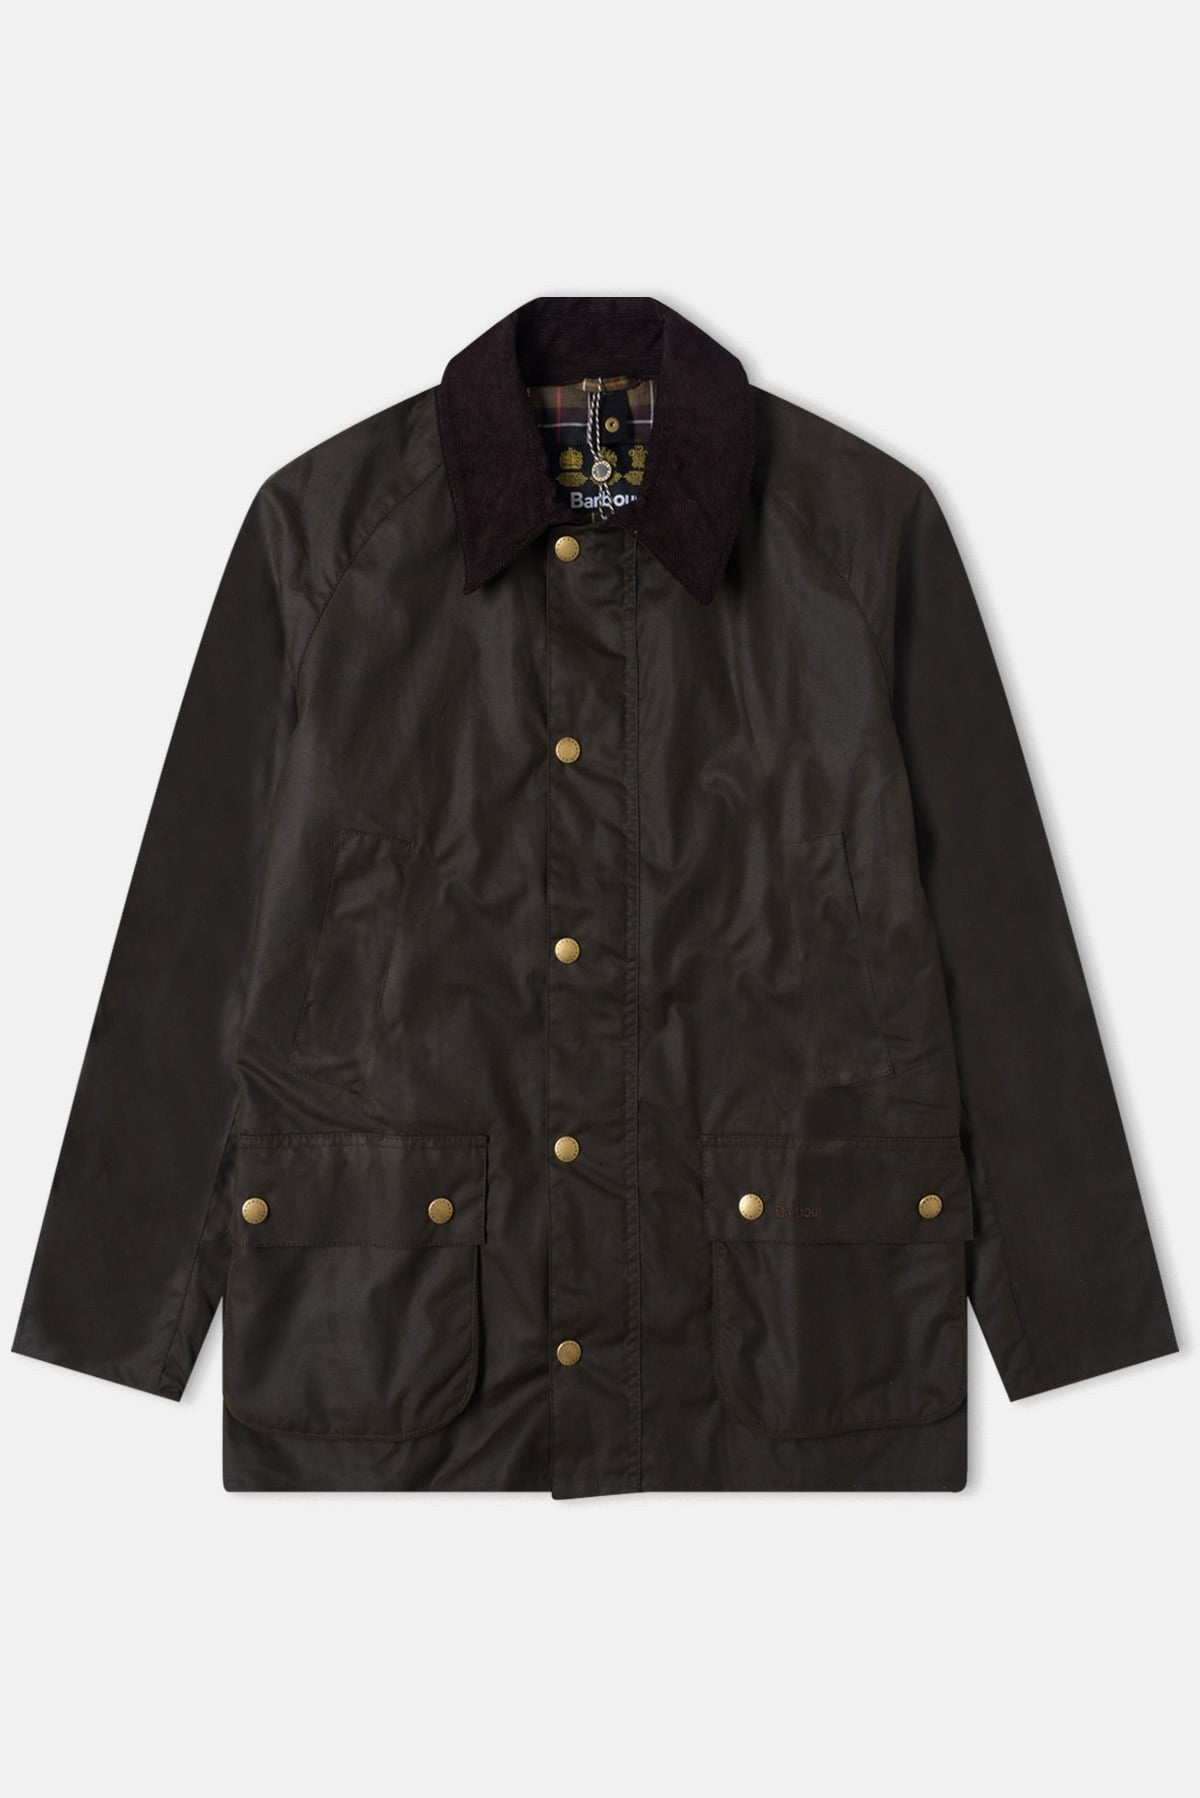 Barbour Ashby Wax Jacket available from Priory eb2c90acb2fe